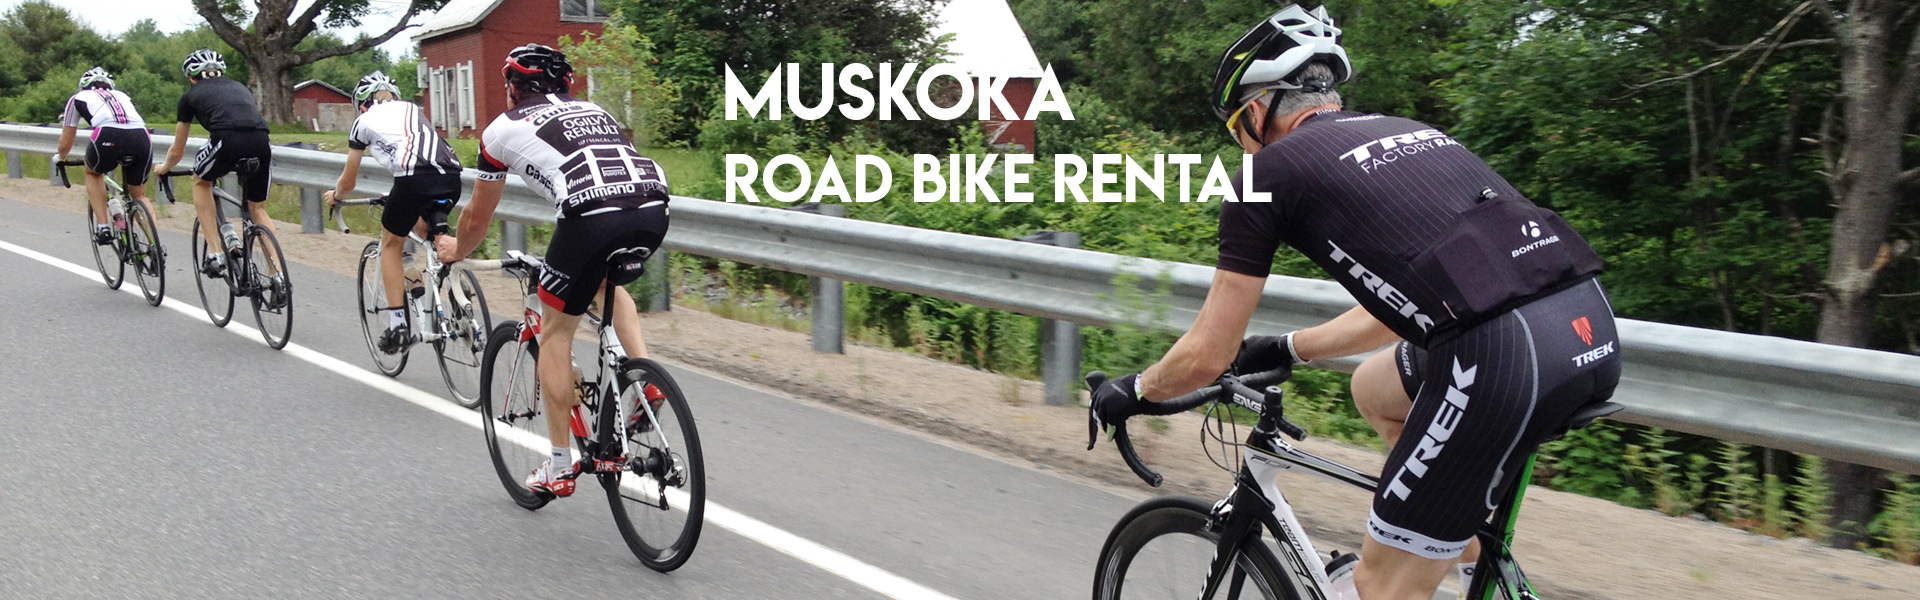 Muskoka Road Bike Rental